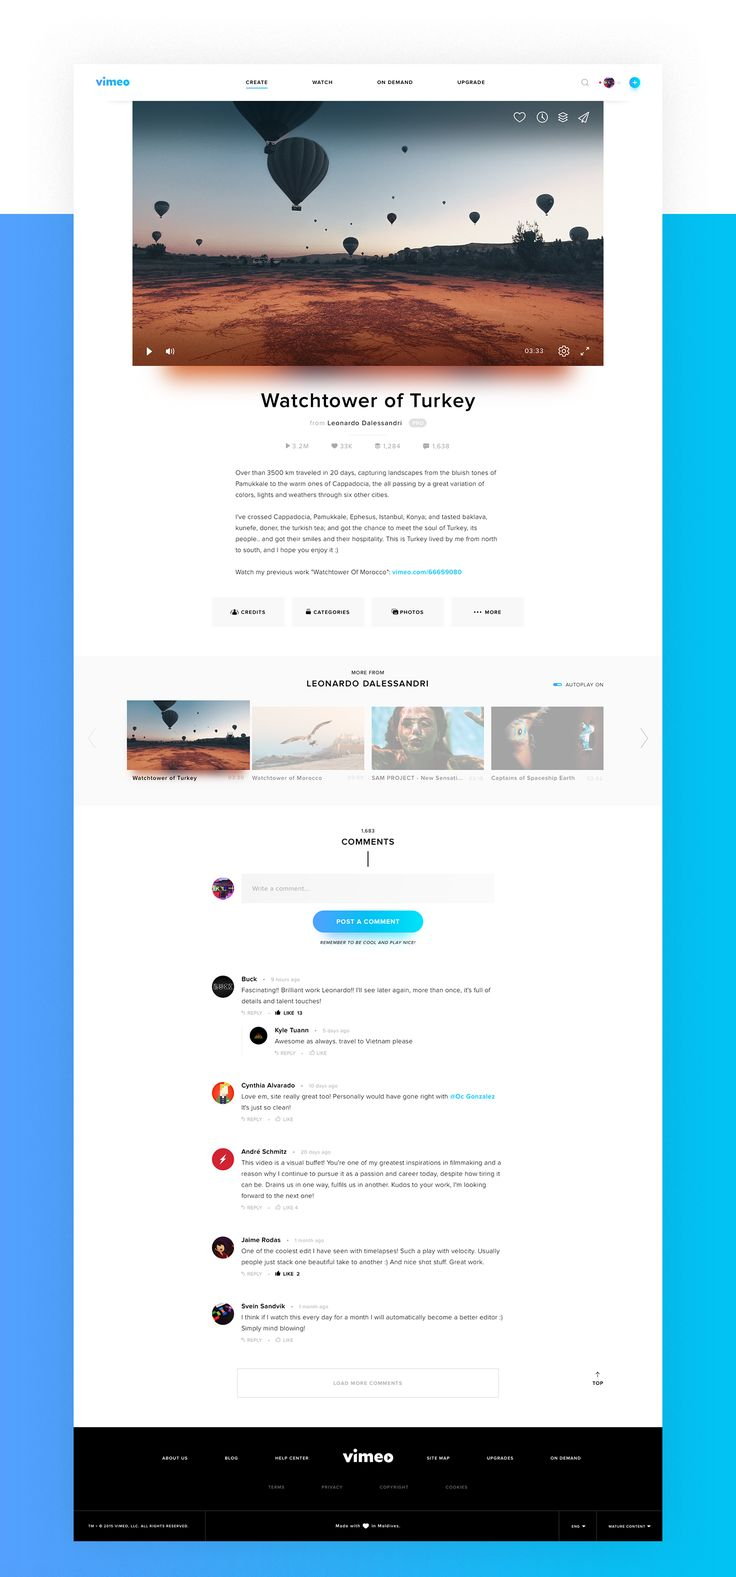 Vimeo Concept - Web Design - Redesign, UI, Video, Clean, Modern, Hover Buttons, Glow, Glows, Light Shadows, Blue, Black